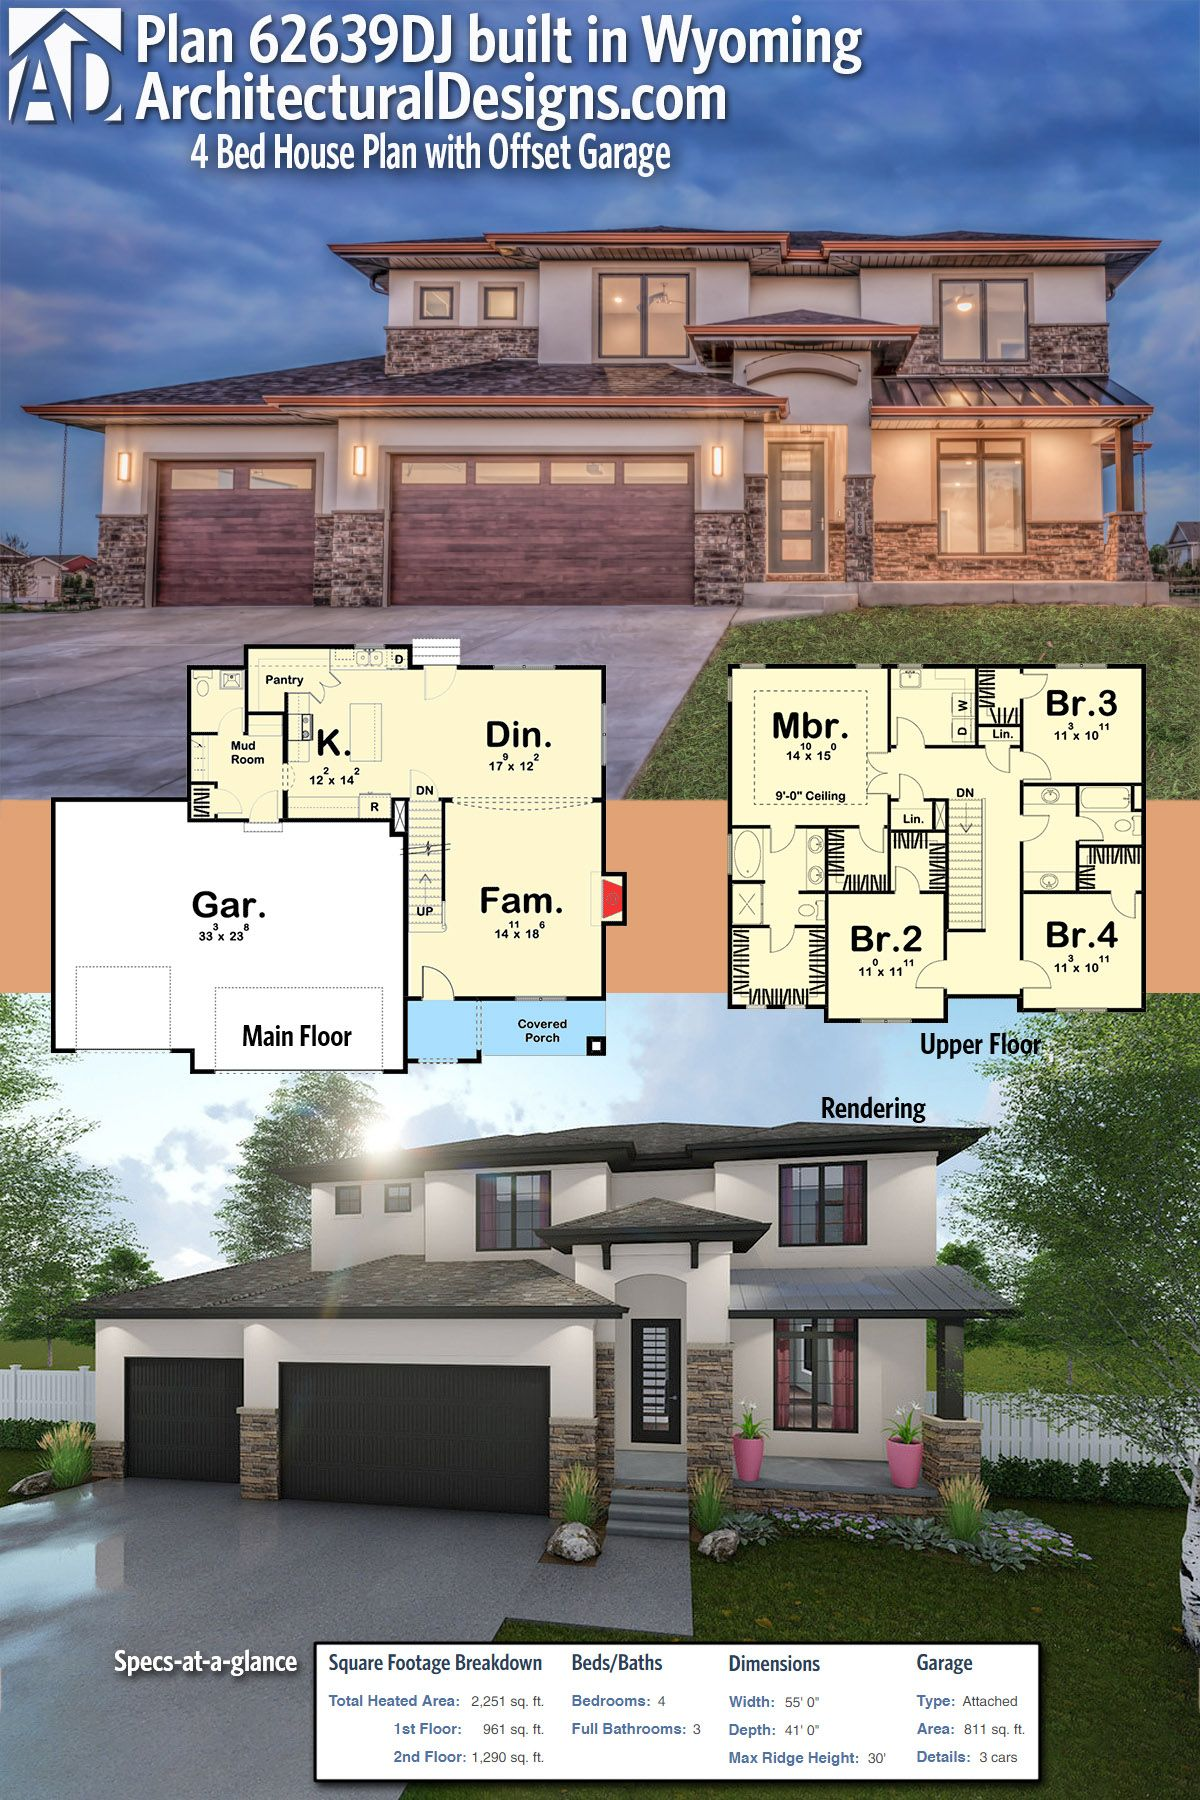 Plan 4 Bed House Plan with Offset